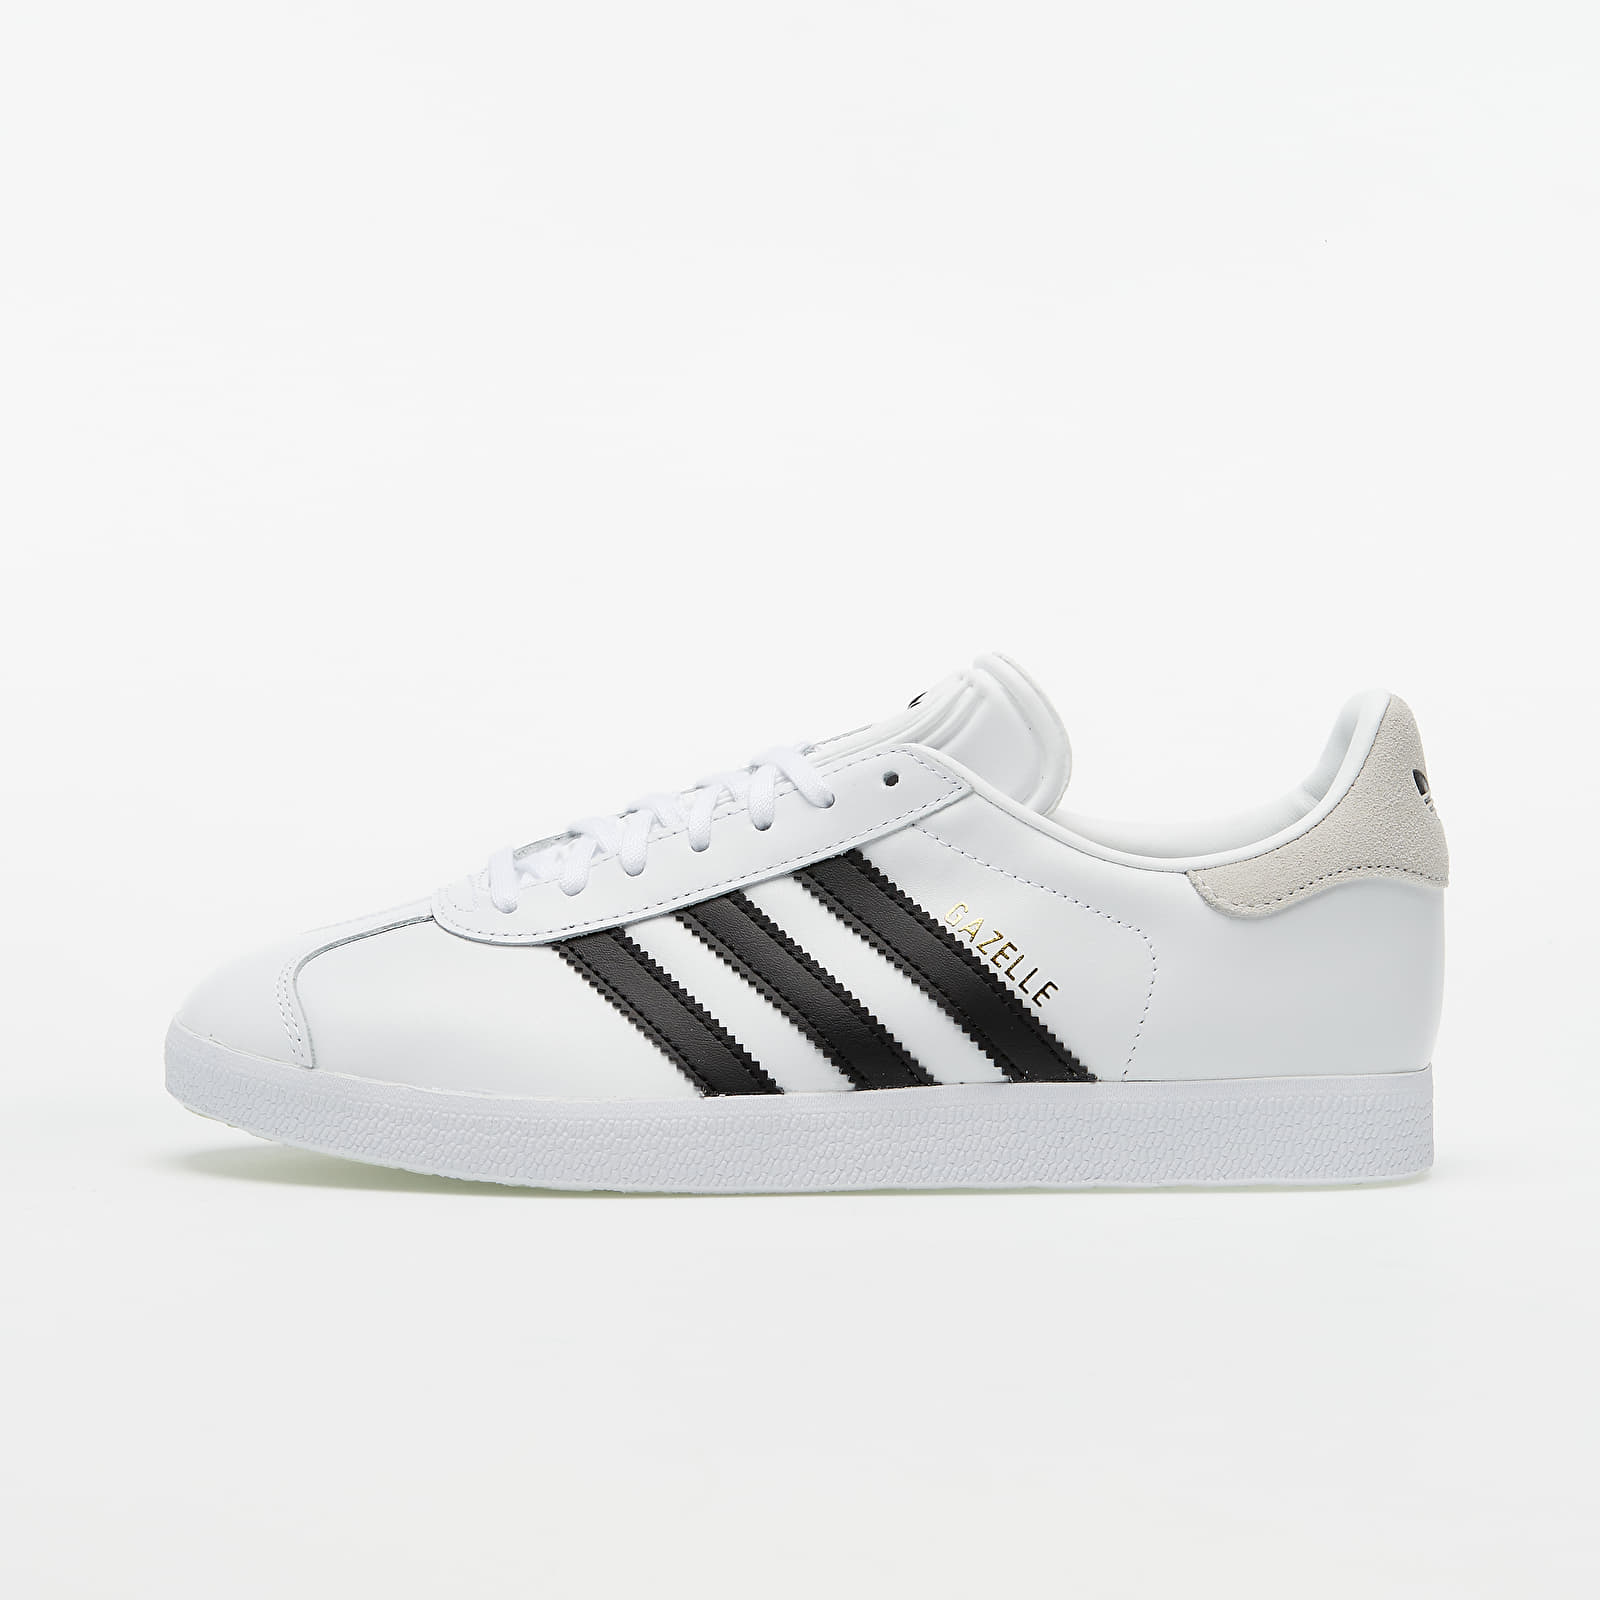 adidas Gazelle W Ftw White/ Core Black/ Crystal White EUR 38 2/3